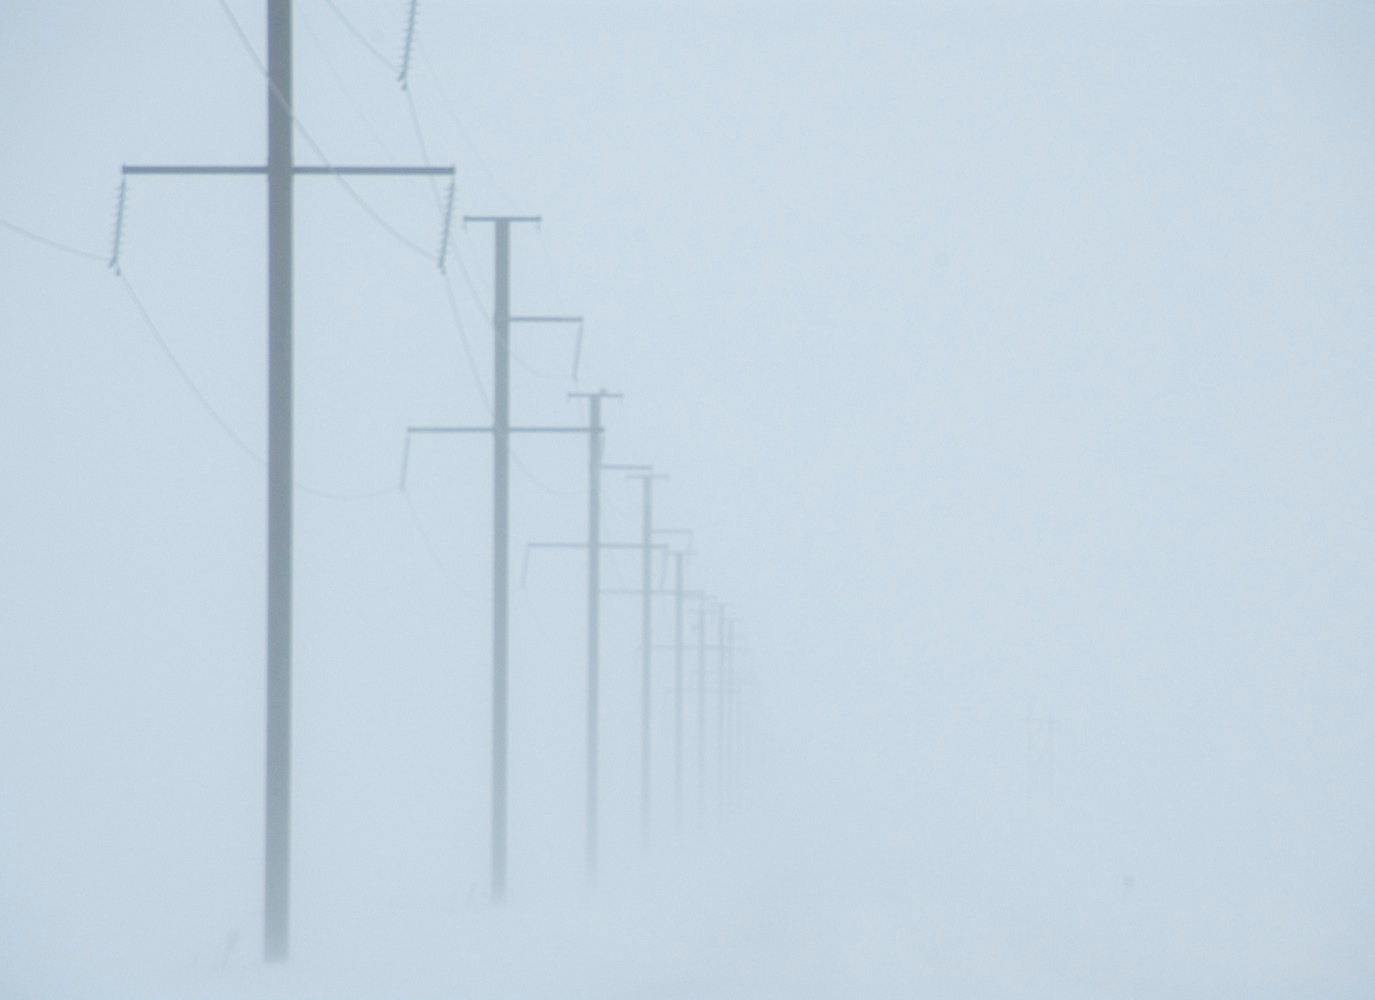 Winter Weather Will Cause Whiteout Conditions in the North